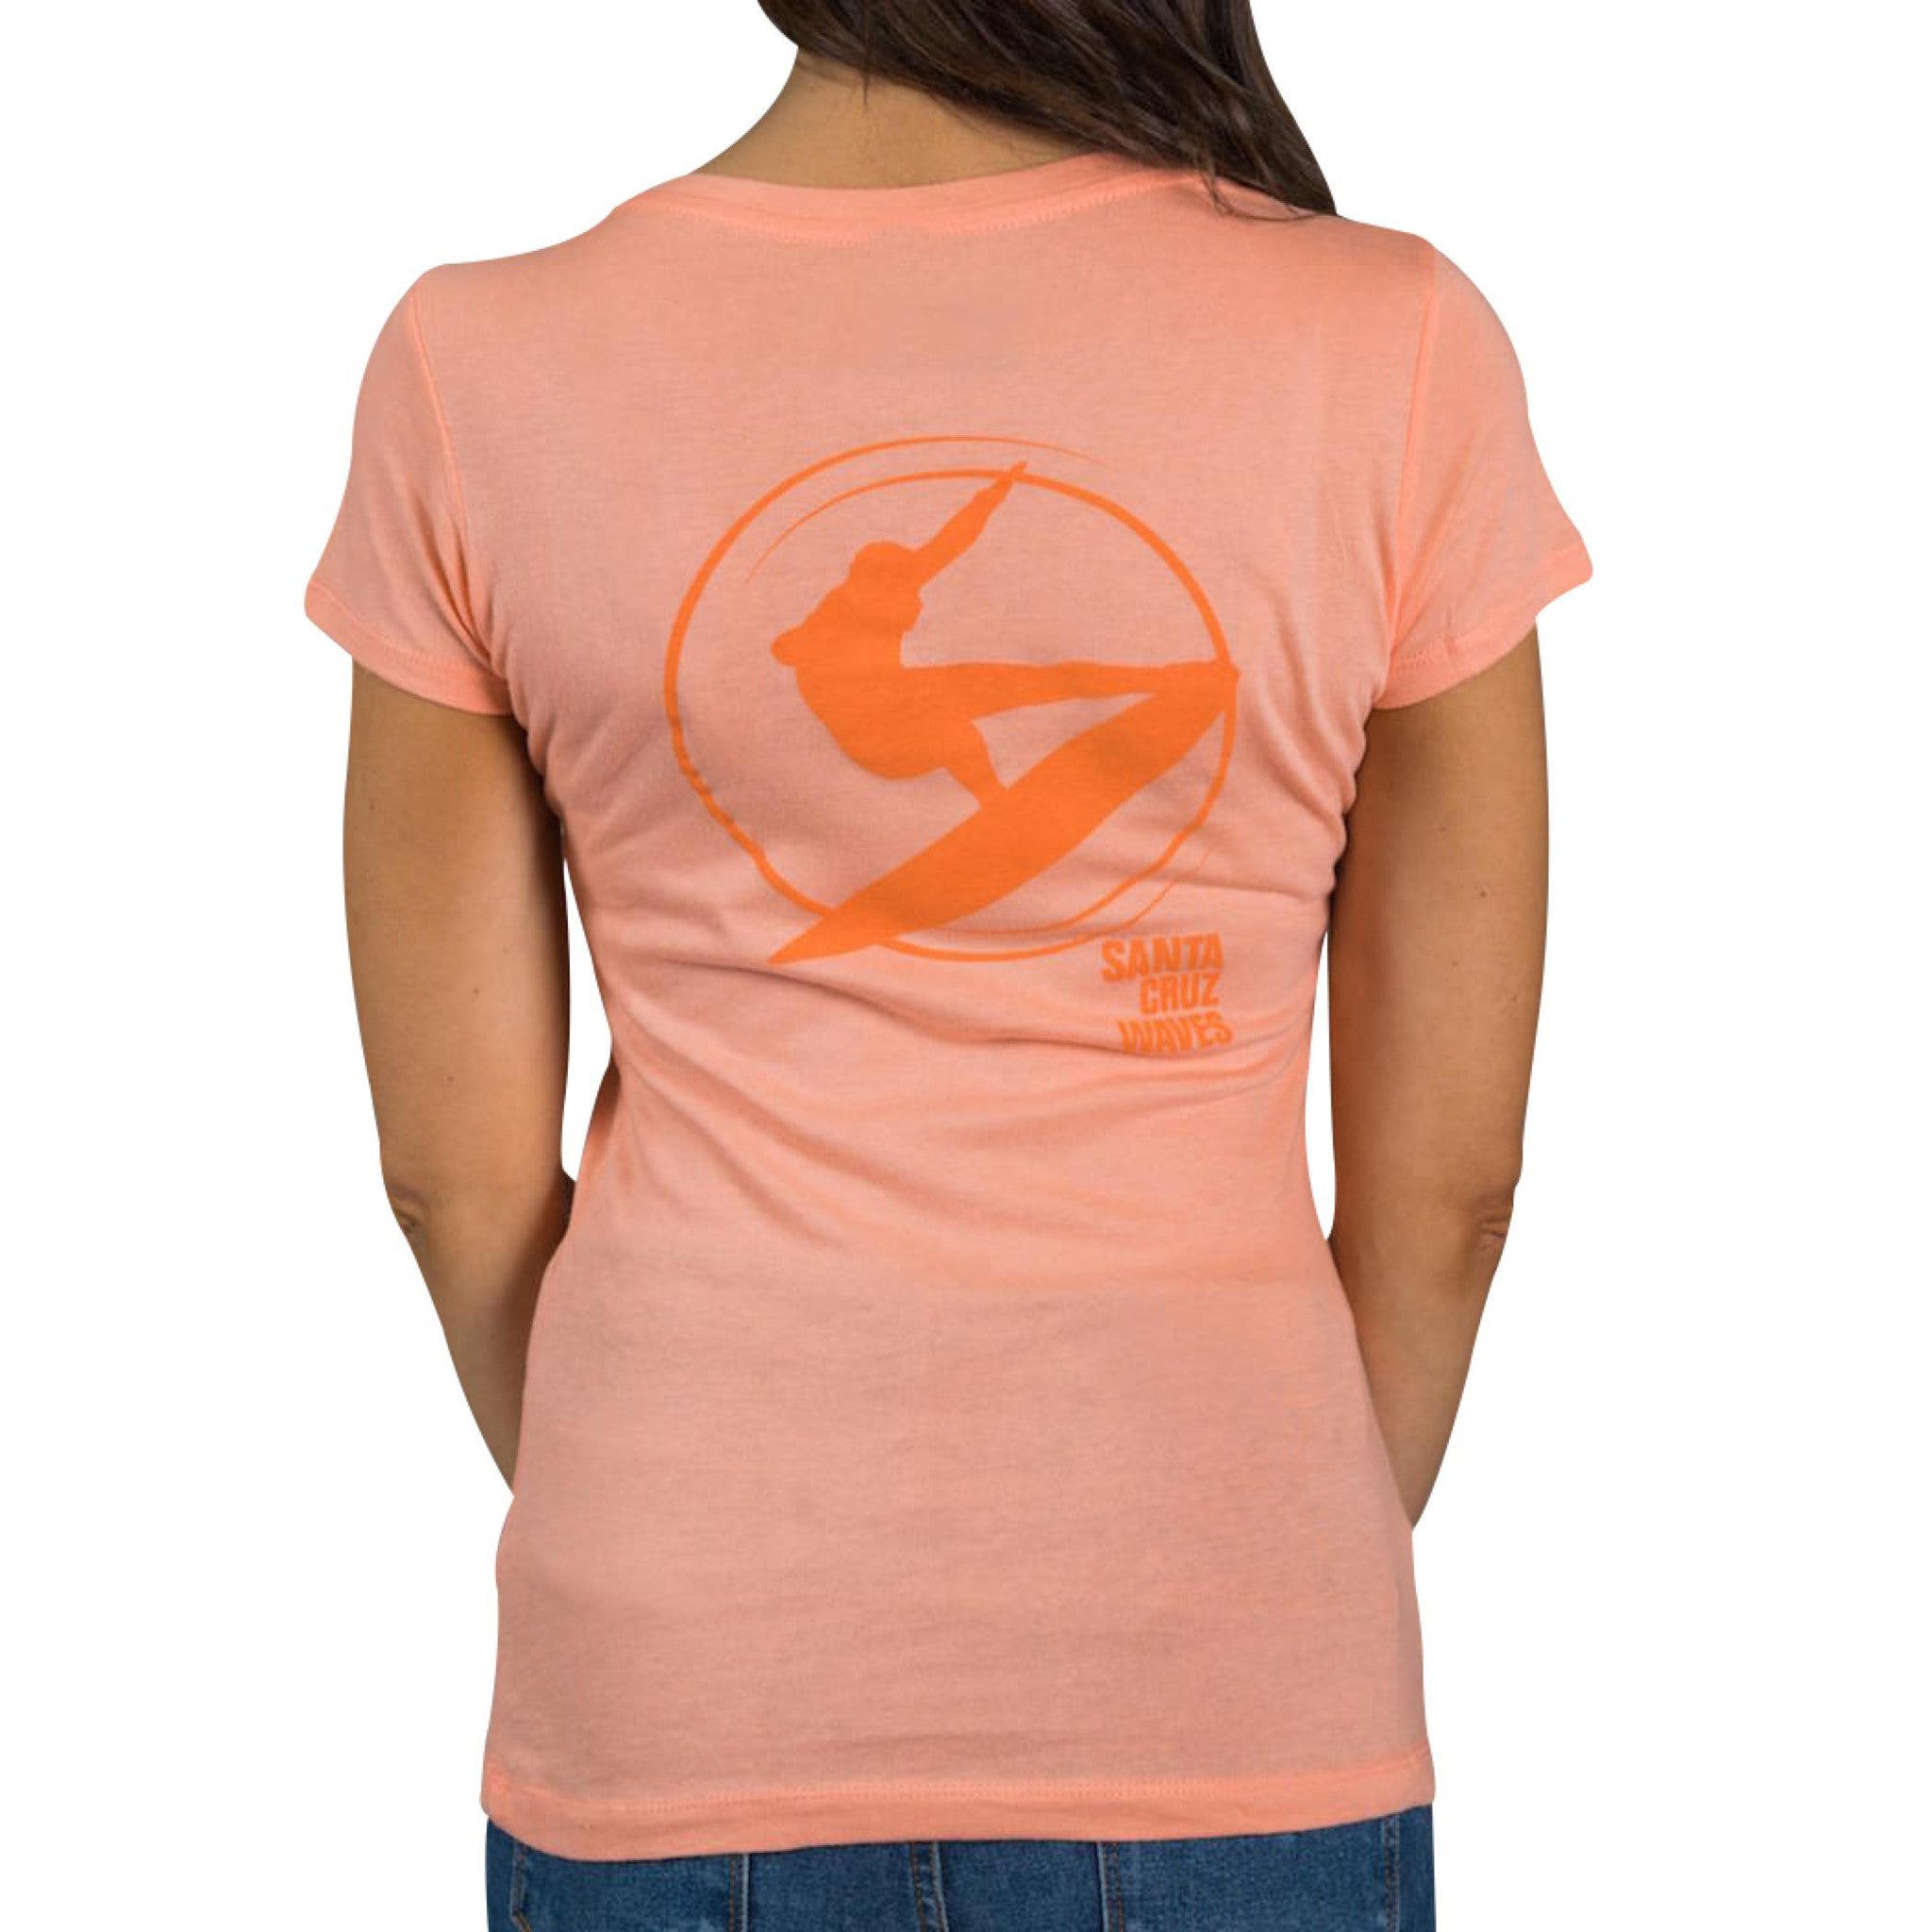 The Santa Cruz Waves V-Neck